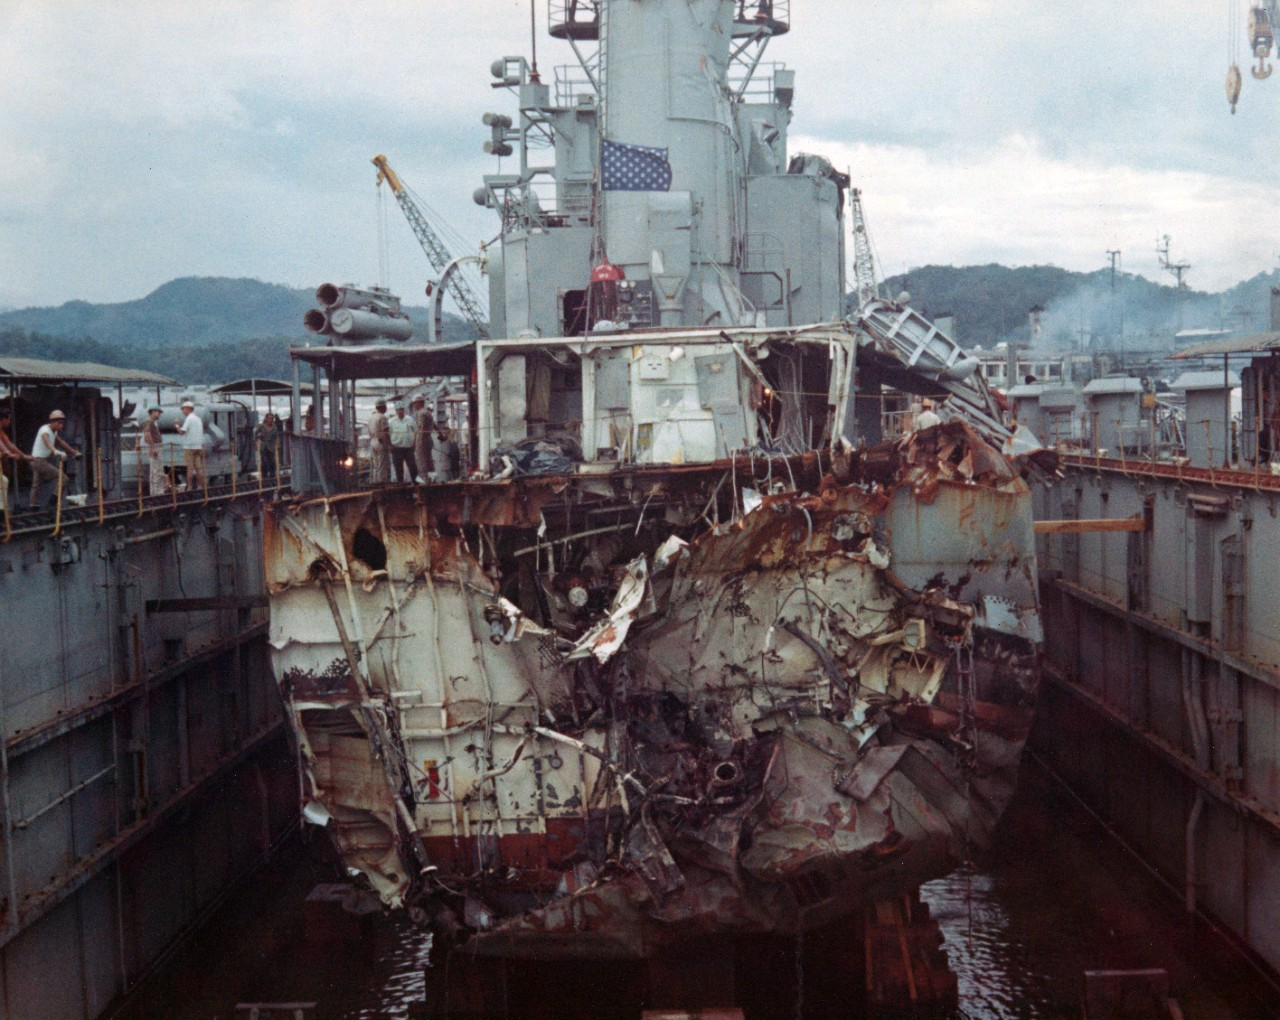 44 color negatives and 7 color prints showing the damaged USS Frank E. Evans (DD-754) being escorted to the auxiliary repair drydock USS Windsor (ADR-22) at Subic Bay, after it had been in involved in a collision with the Australian aircraft carrier HMAS Melbourne on 3 June 1969. Photographer PN2 Ralph Treser. Photos received from PAO CINCPAC Det-WESPAC, 26 April 1971.